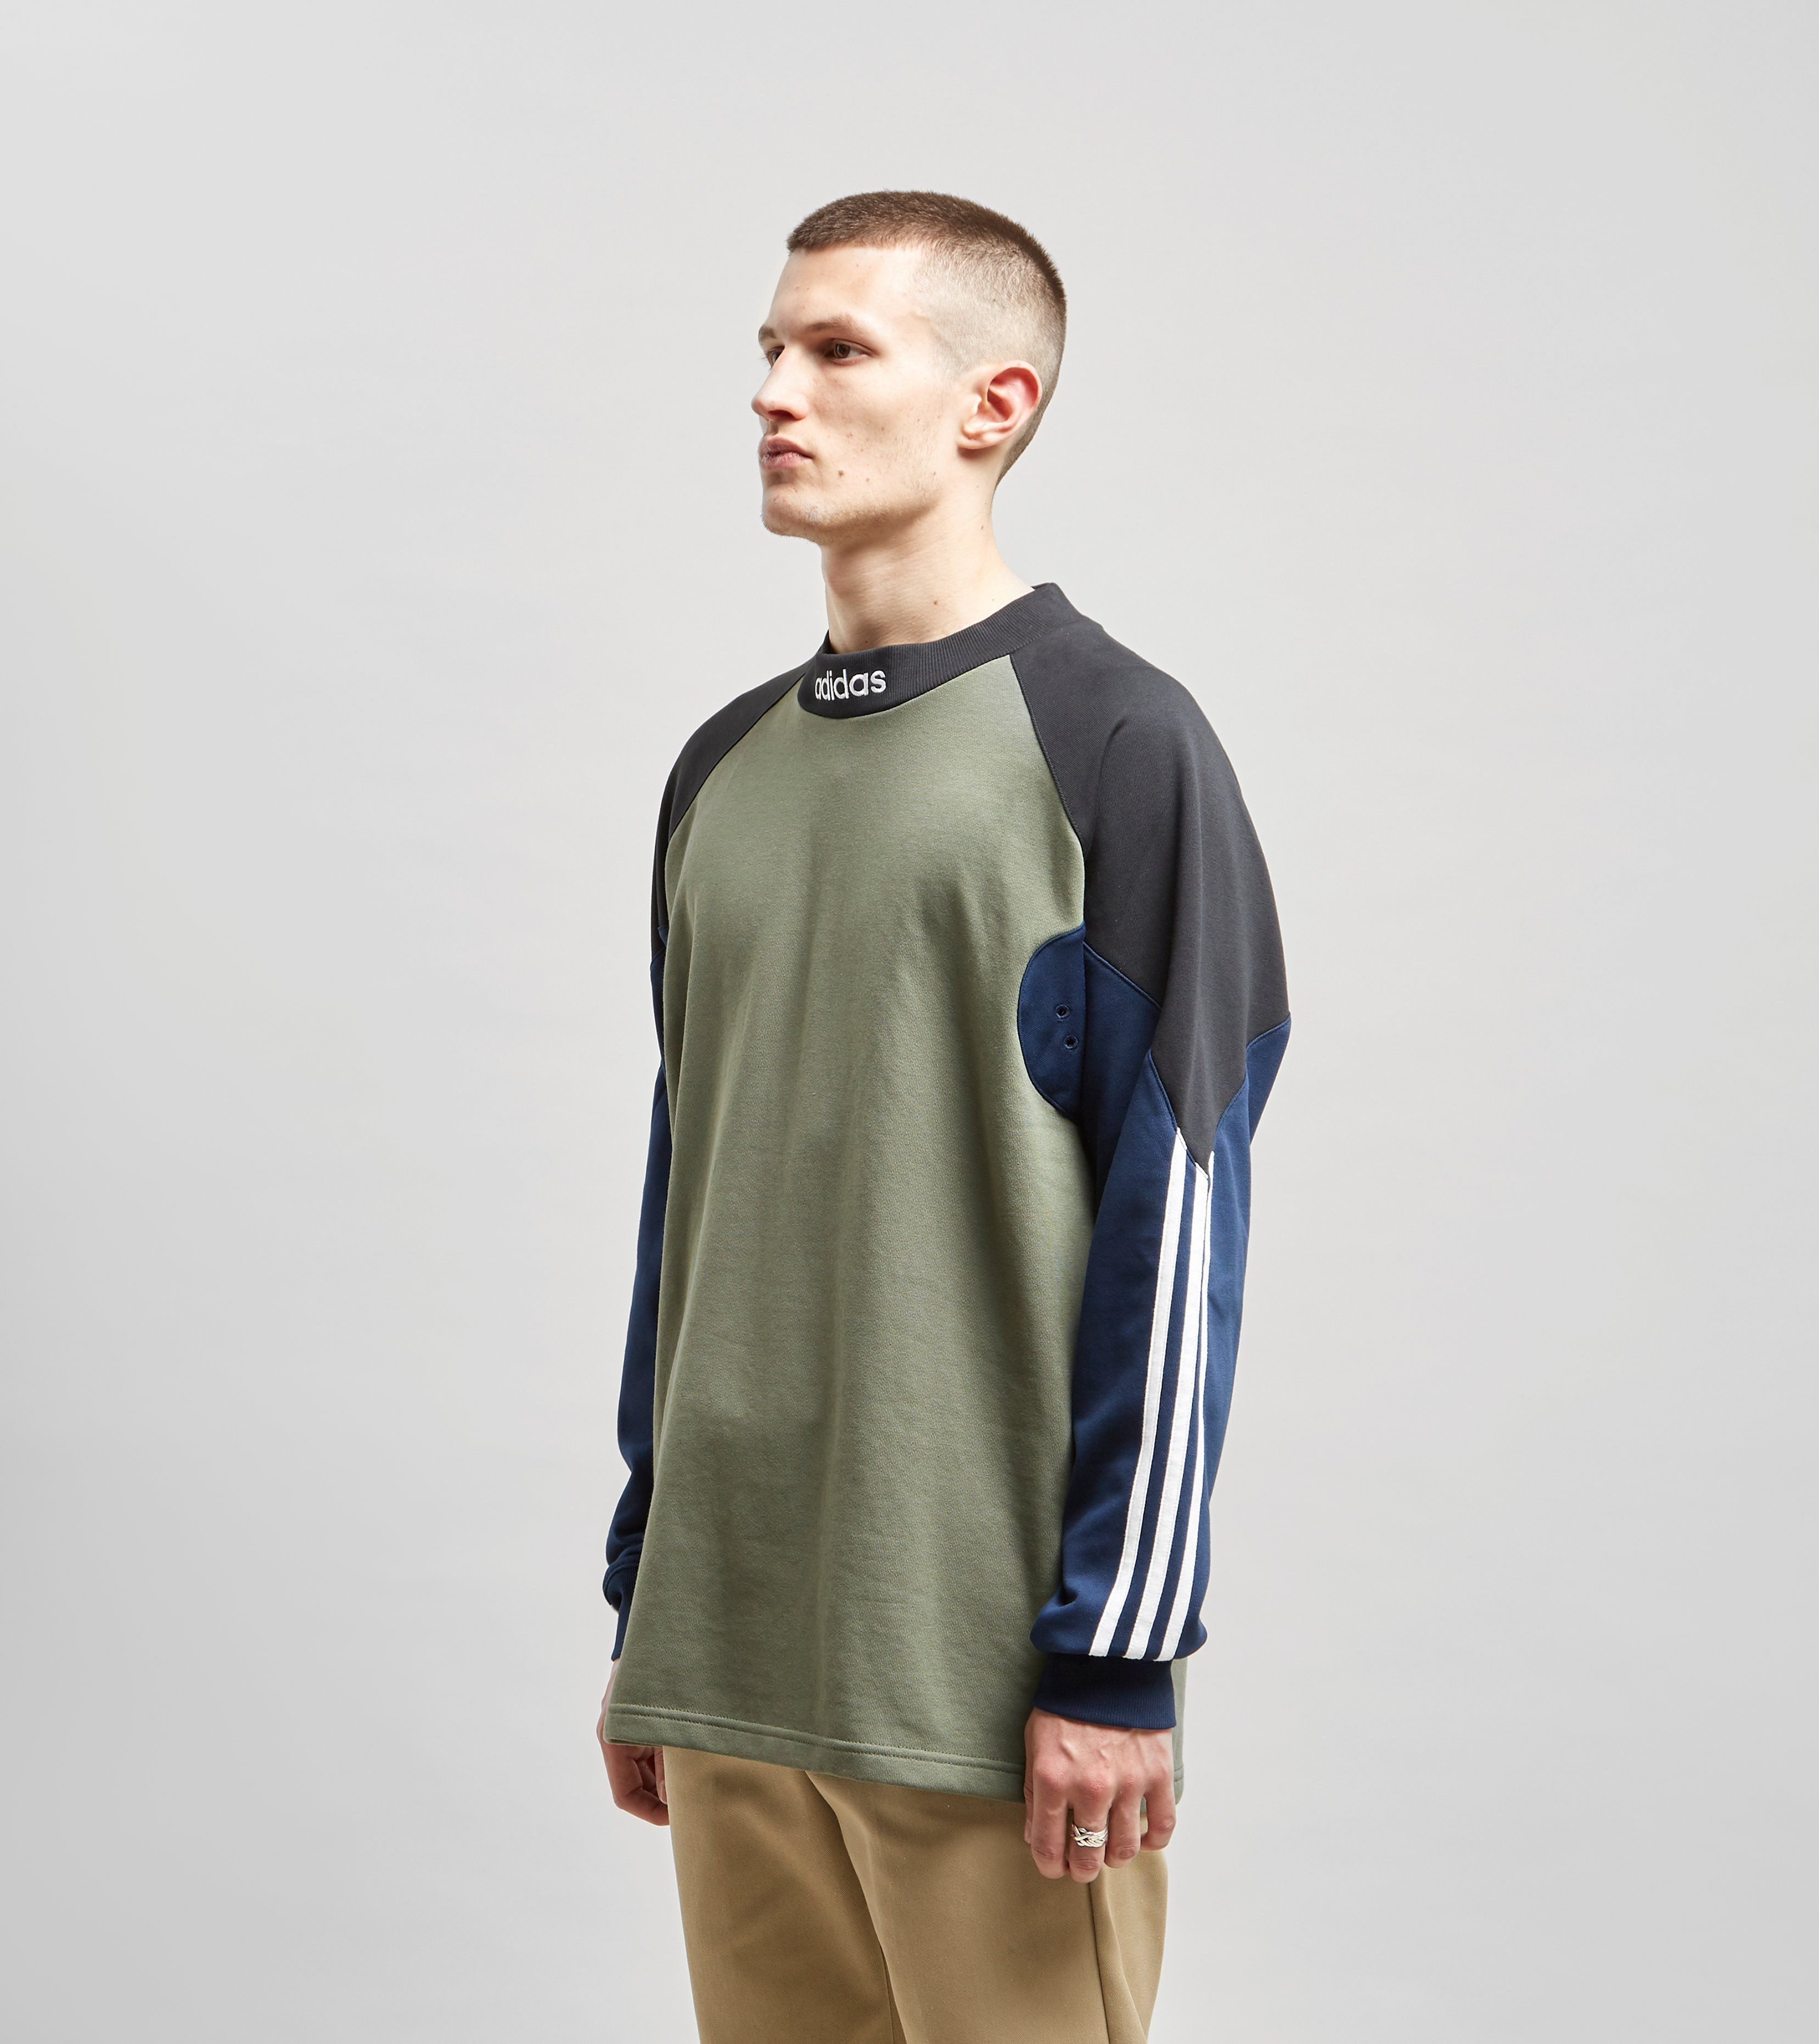 adidas Originals Skateboarding Goalie Shirt